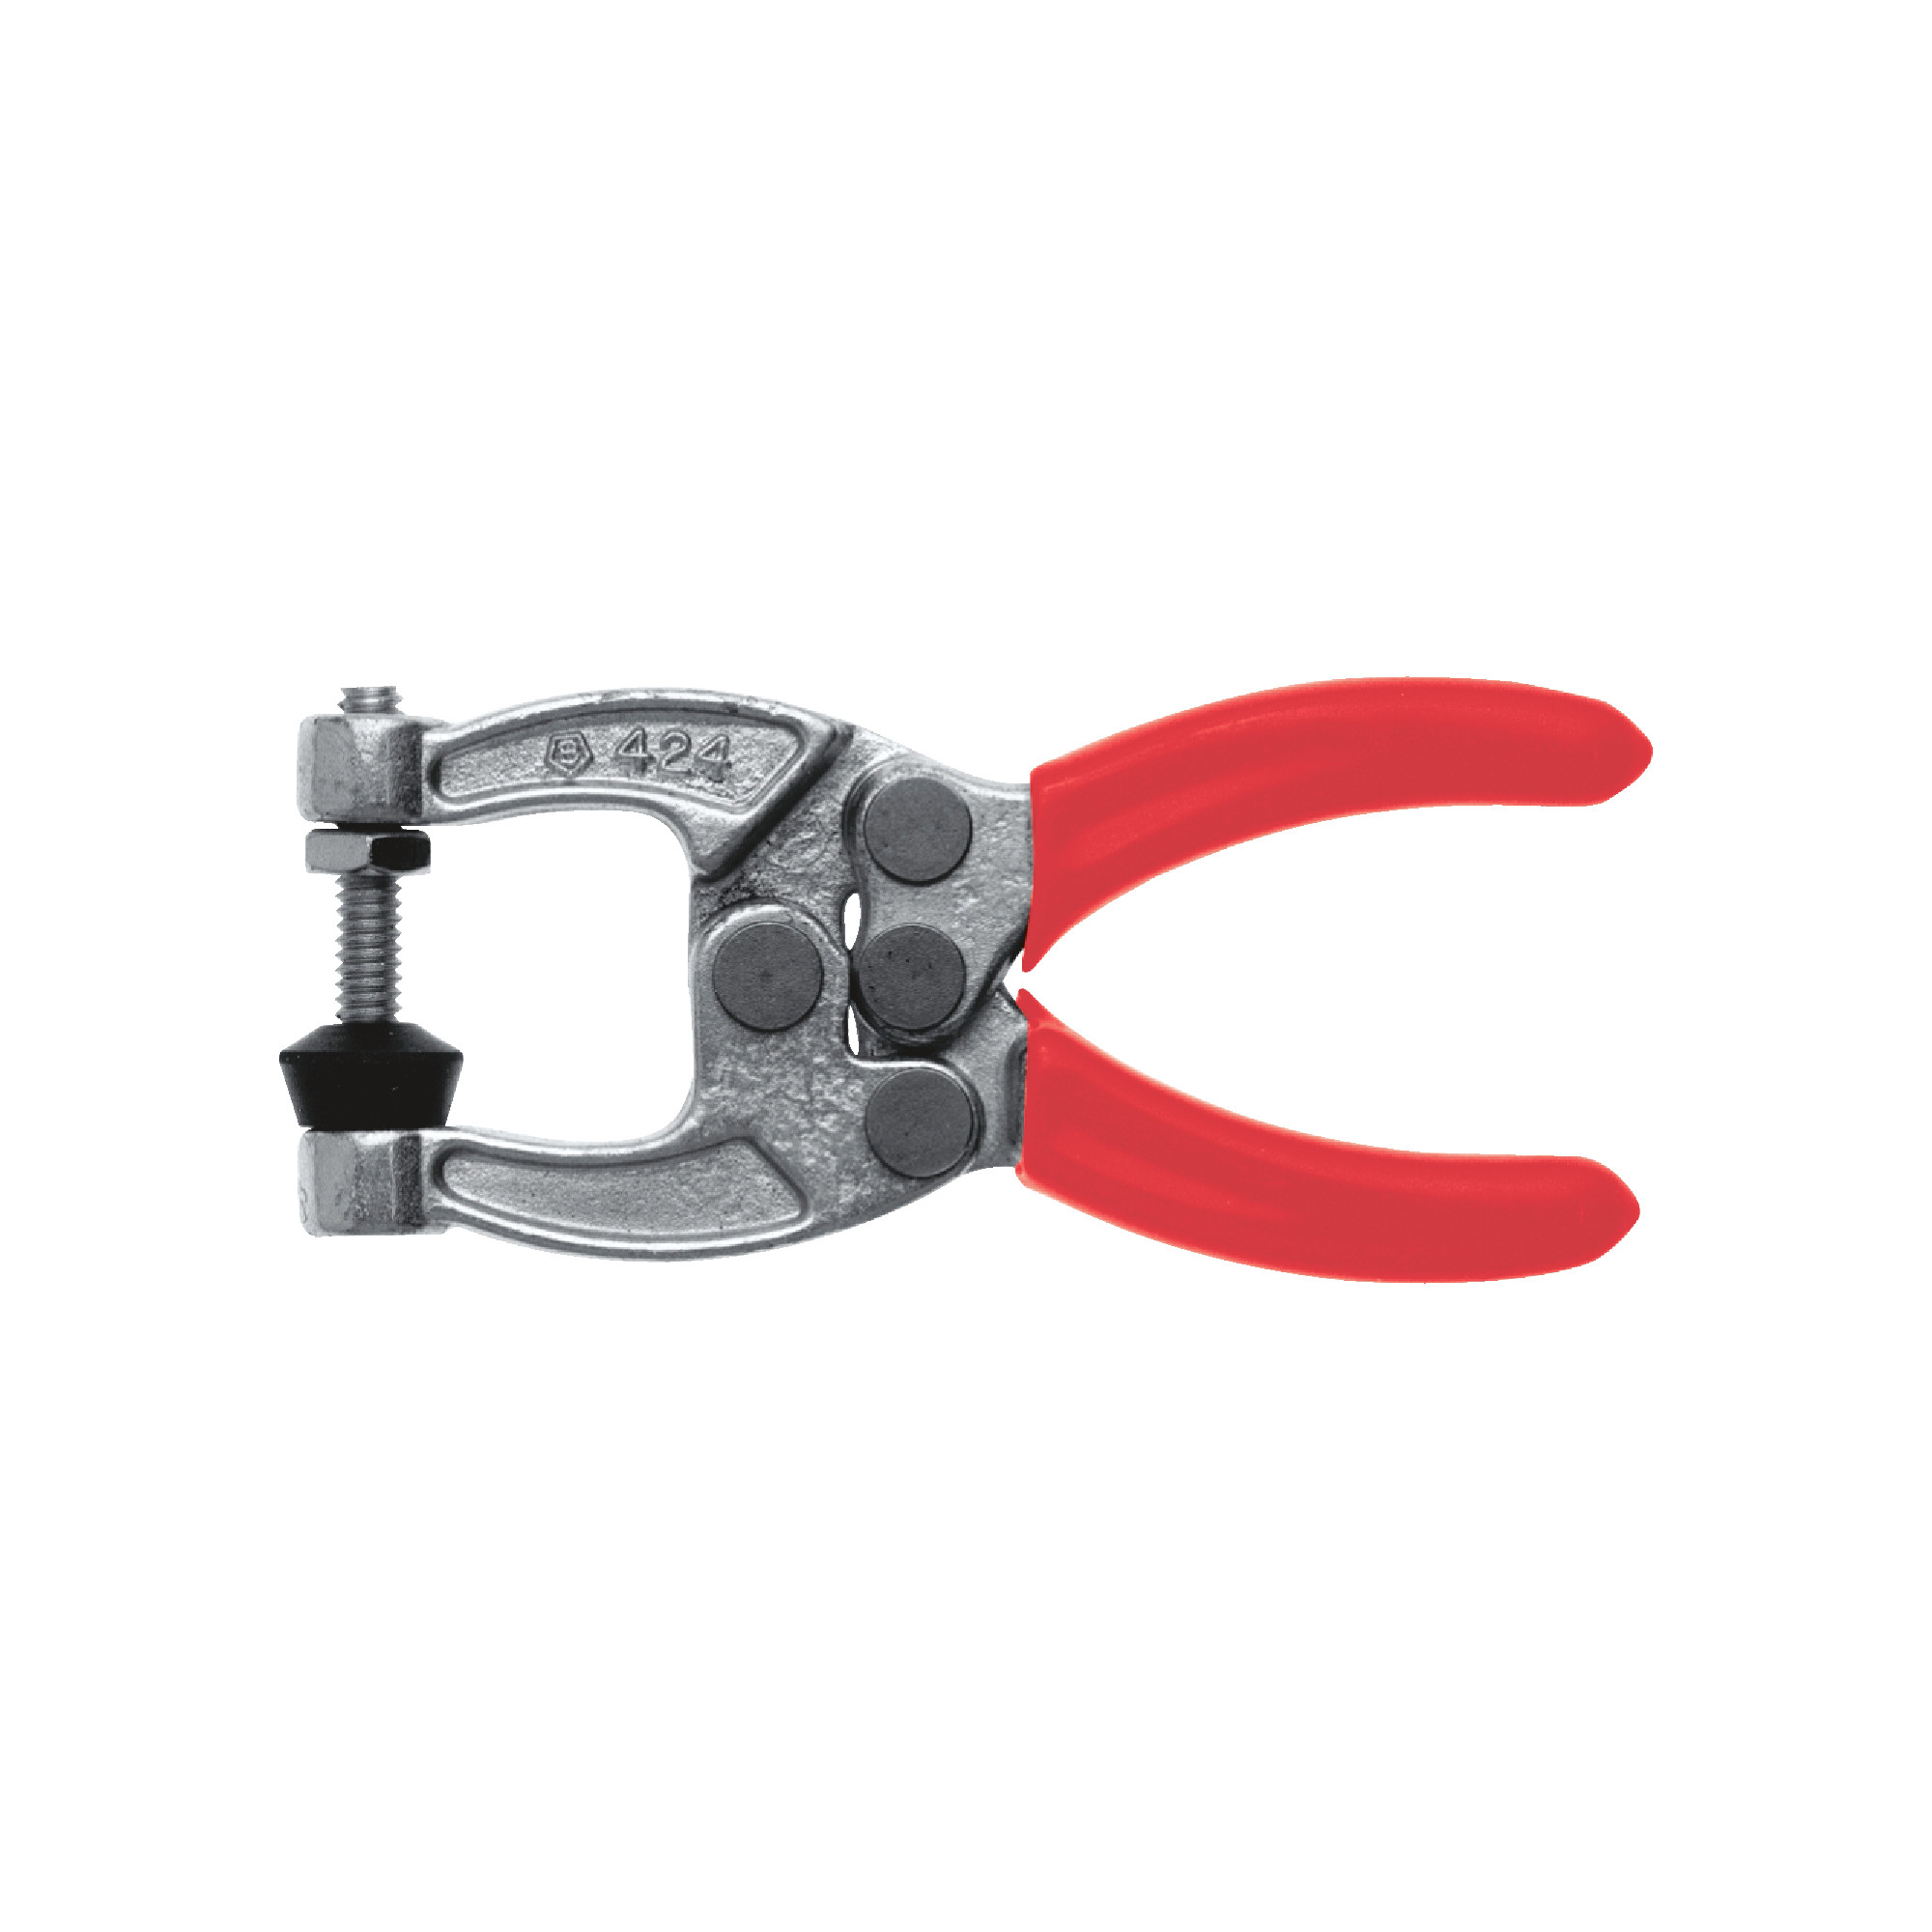 Squeeze Action Forged Jaws Toggle Clamp